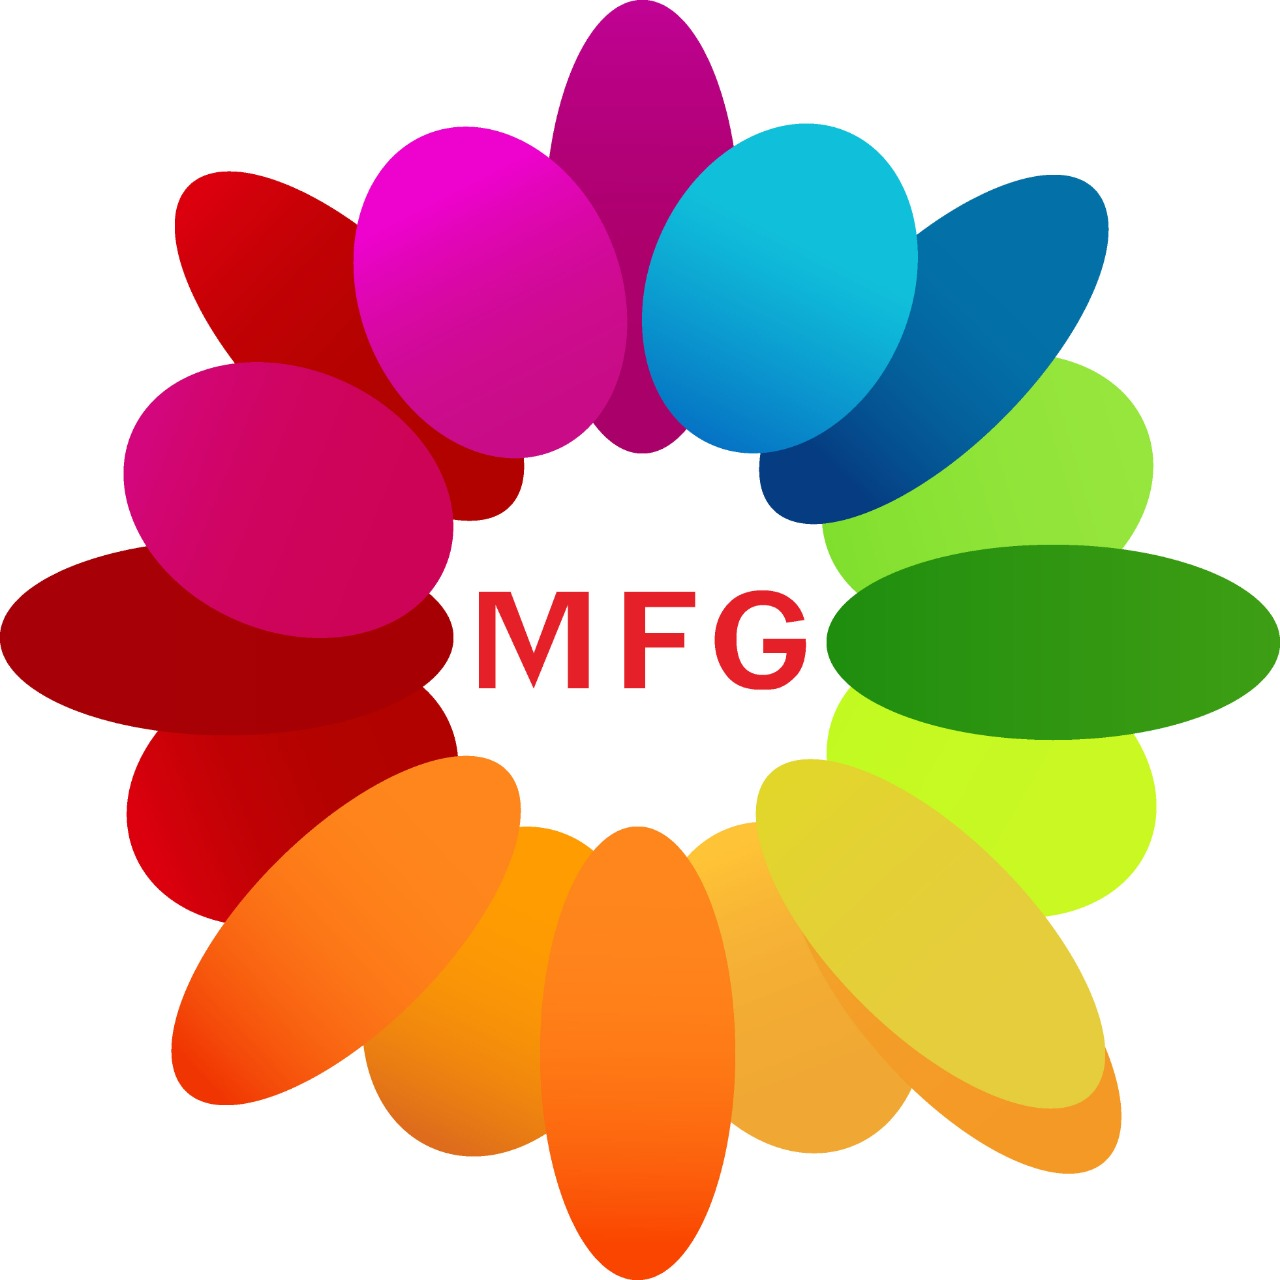 Box Of Chocolate With Santa Clause Toys, Santa Cap And Candles Arranged In A Basket